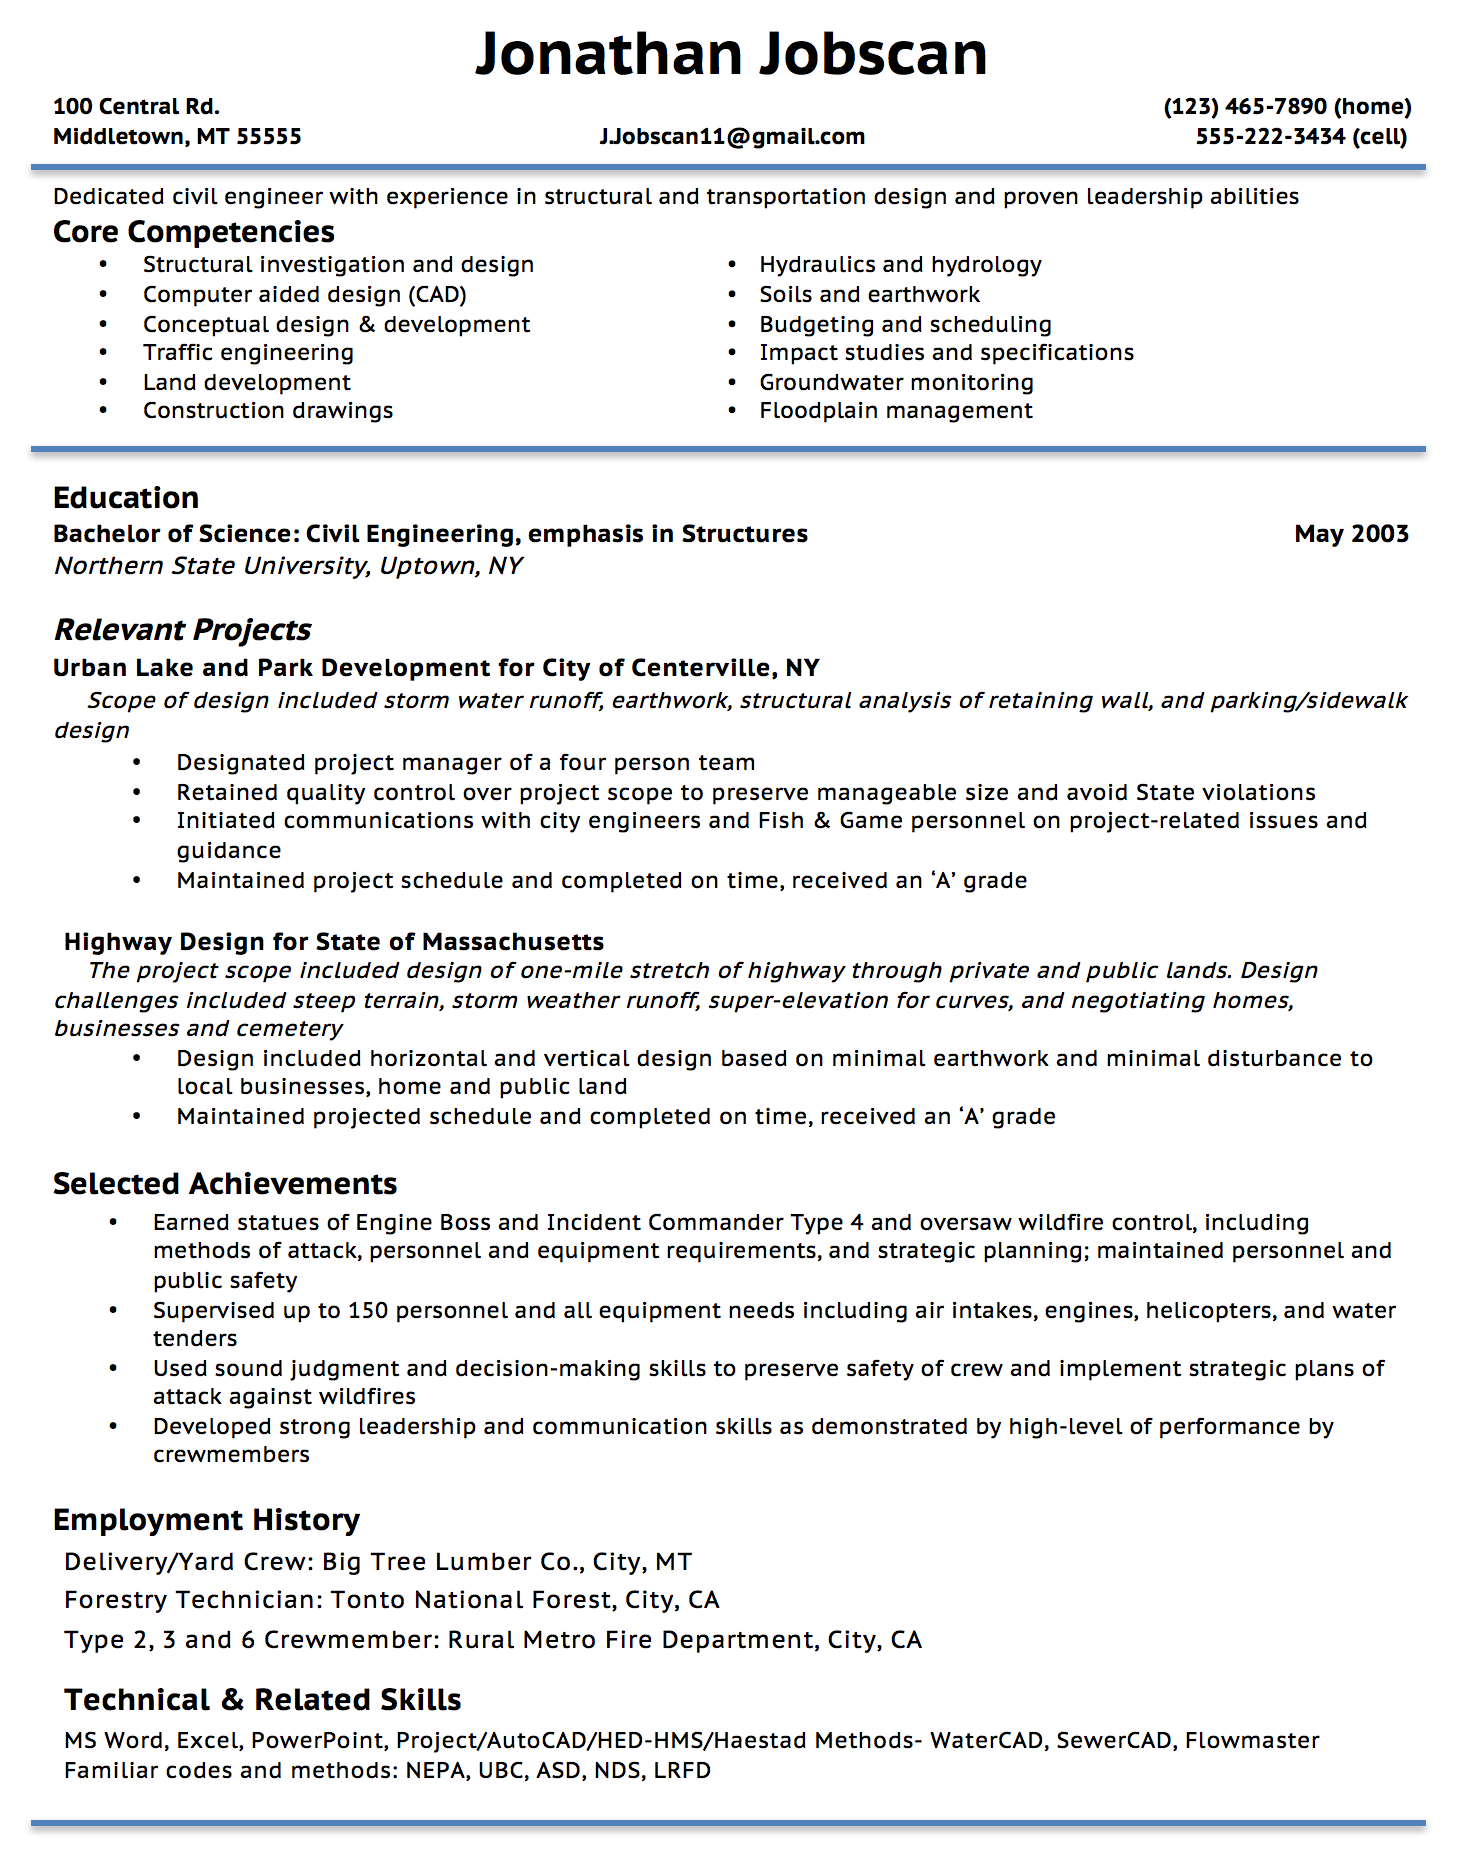 Opposenewapstandardsus  Gorgeous Resume Writing Guide  Jobscan With Luxury Example Of A Functional Resume Format With Astounding Resume Critique Free Also Good Sample Resume In Addition Sales Manager Resume Sample And Receptionist Skills For Resume As Well As Summary Of Qualifications Resume Examples Additionally It Manager Resume Sample From Jobscanco With Opposenewapstandardsus  Luxury Resume Writing Guide  Jobscan With Astounding Example Of A Functional Resume Format And Gorgeous Resume Critique Free Also Good Sample Resume In Addition Sales Manager Resume Sample From Jobscanco